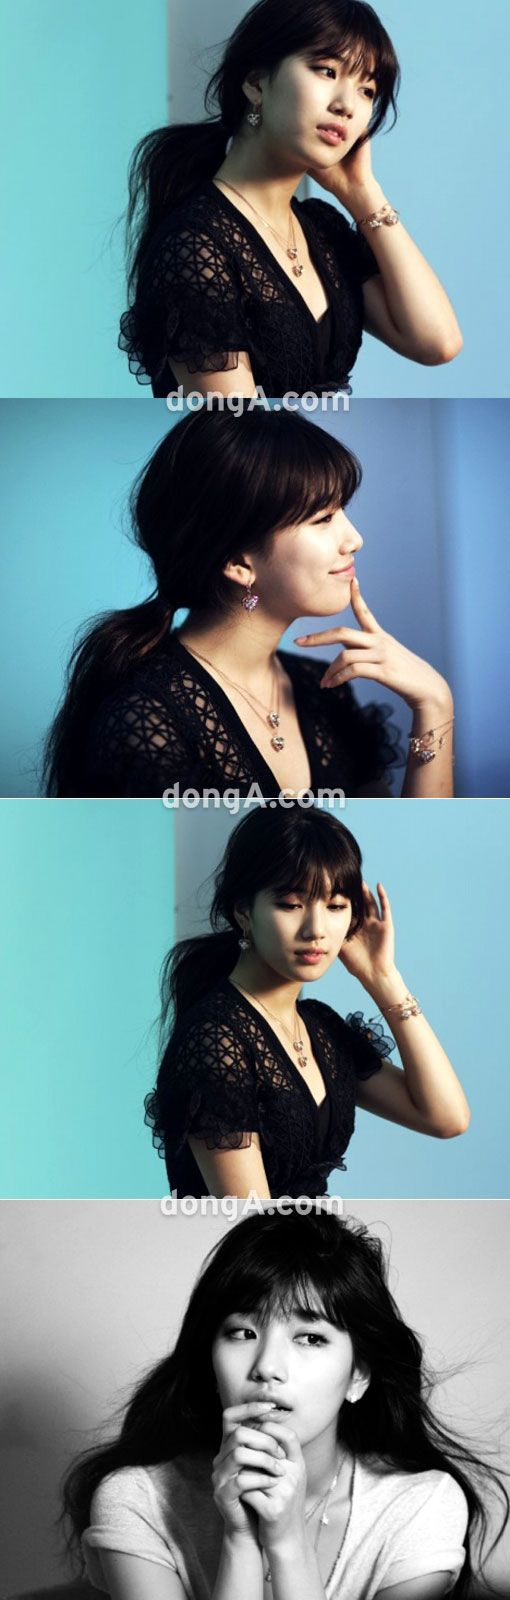 without doubt...the hottest celeb in Korea these days...Suzy!